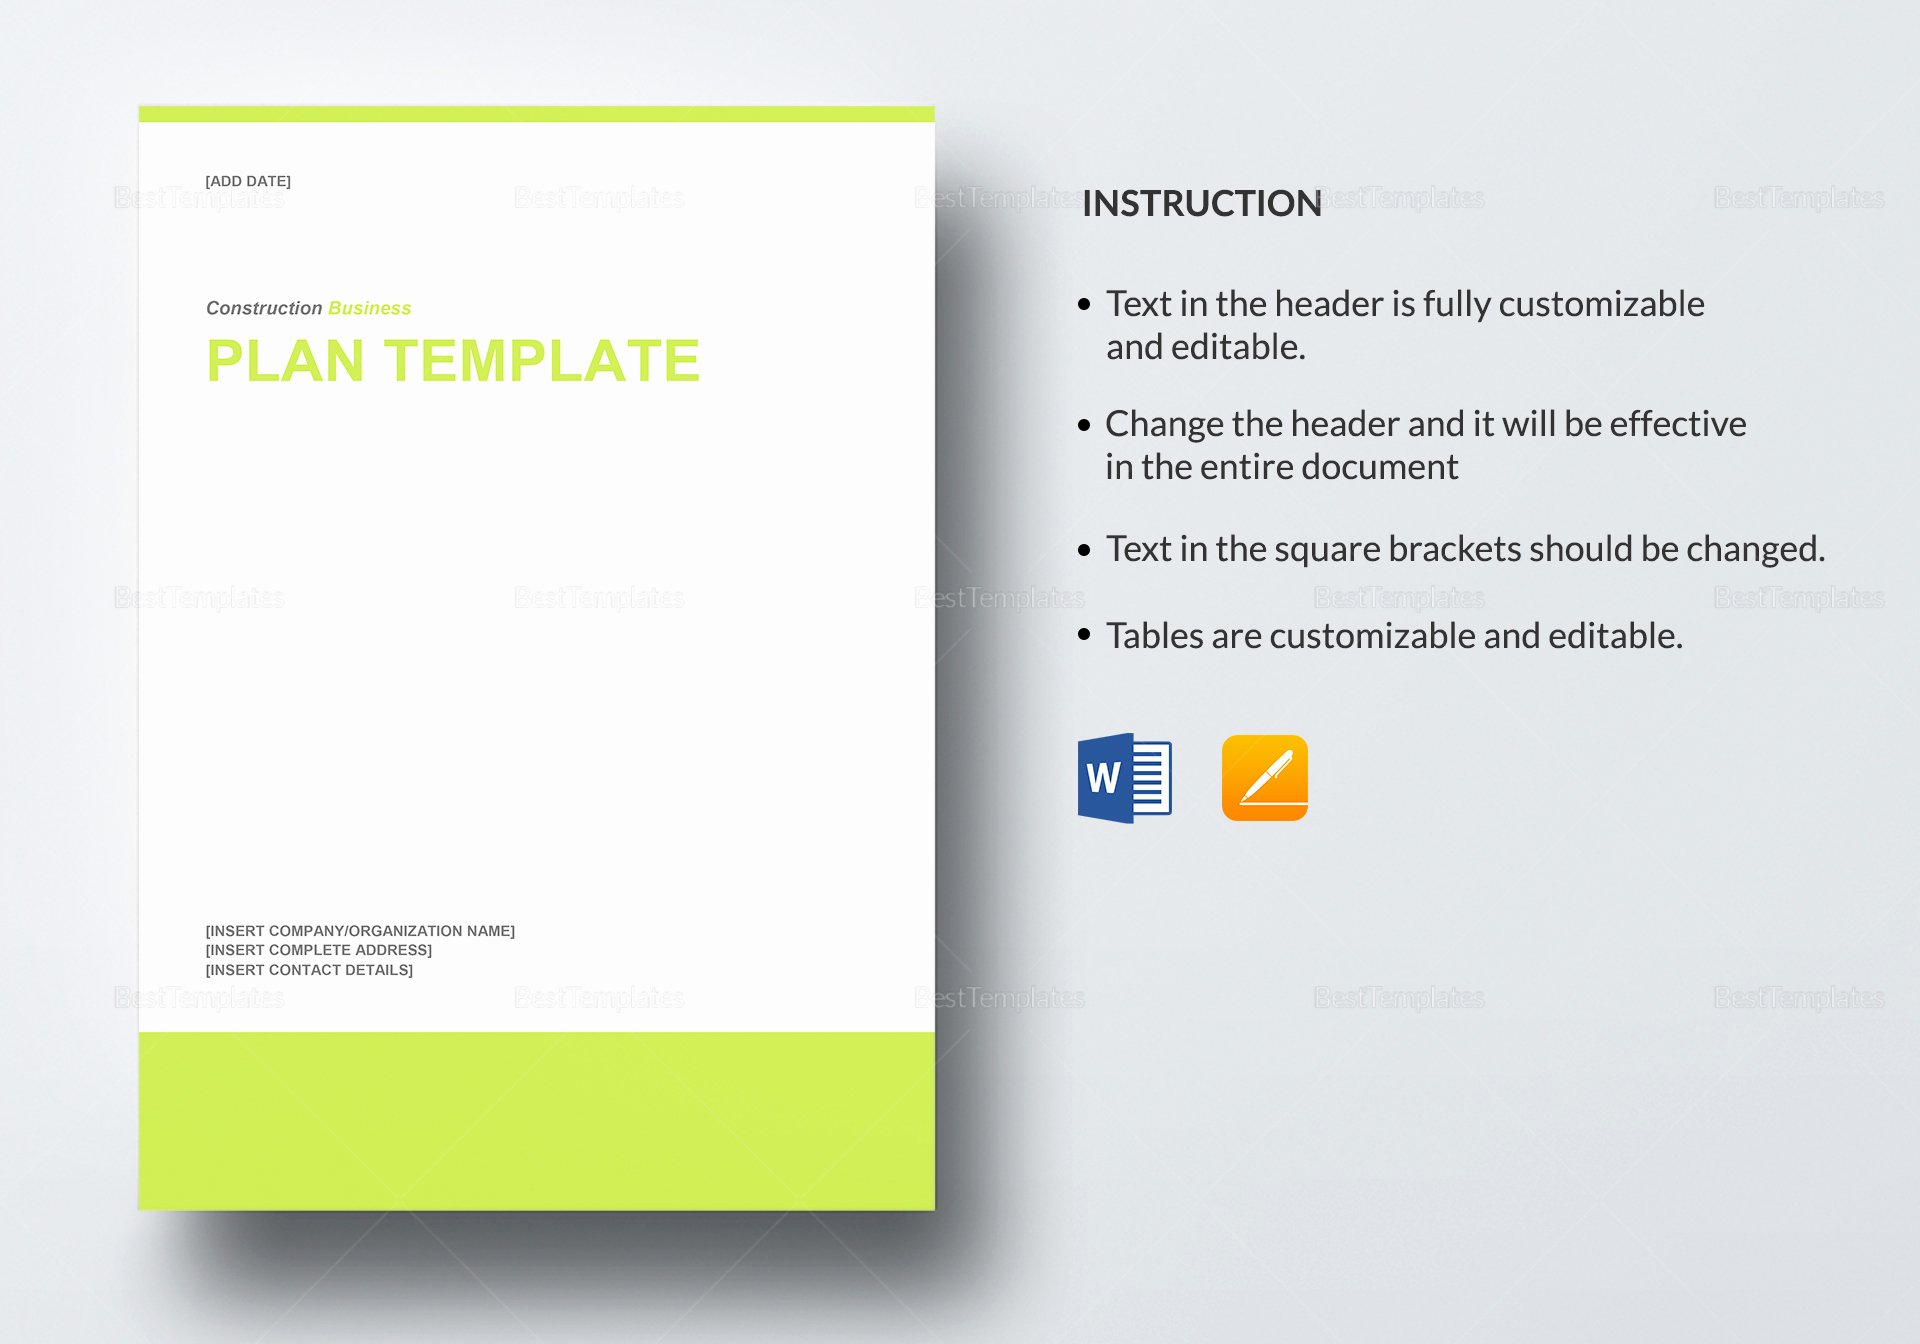 Construction Business Plan Template Beautiful Construction Business Plan Template In Word Google Docs